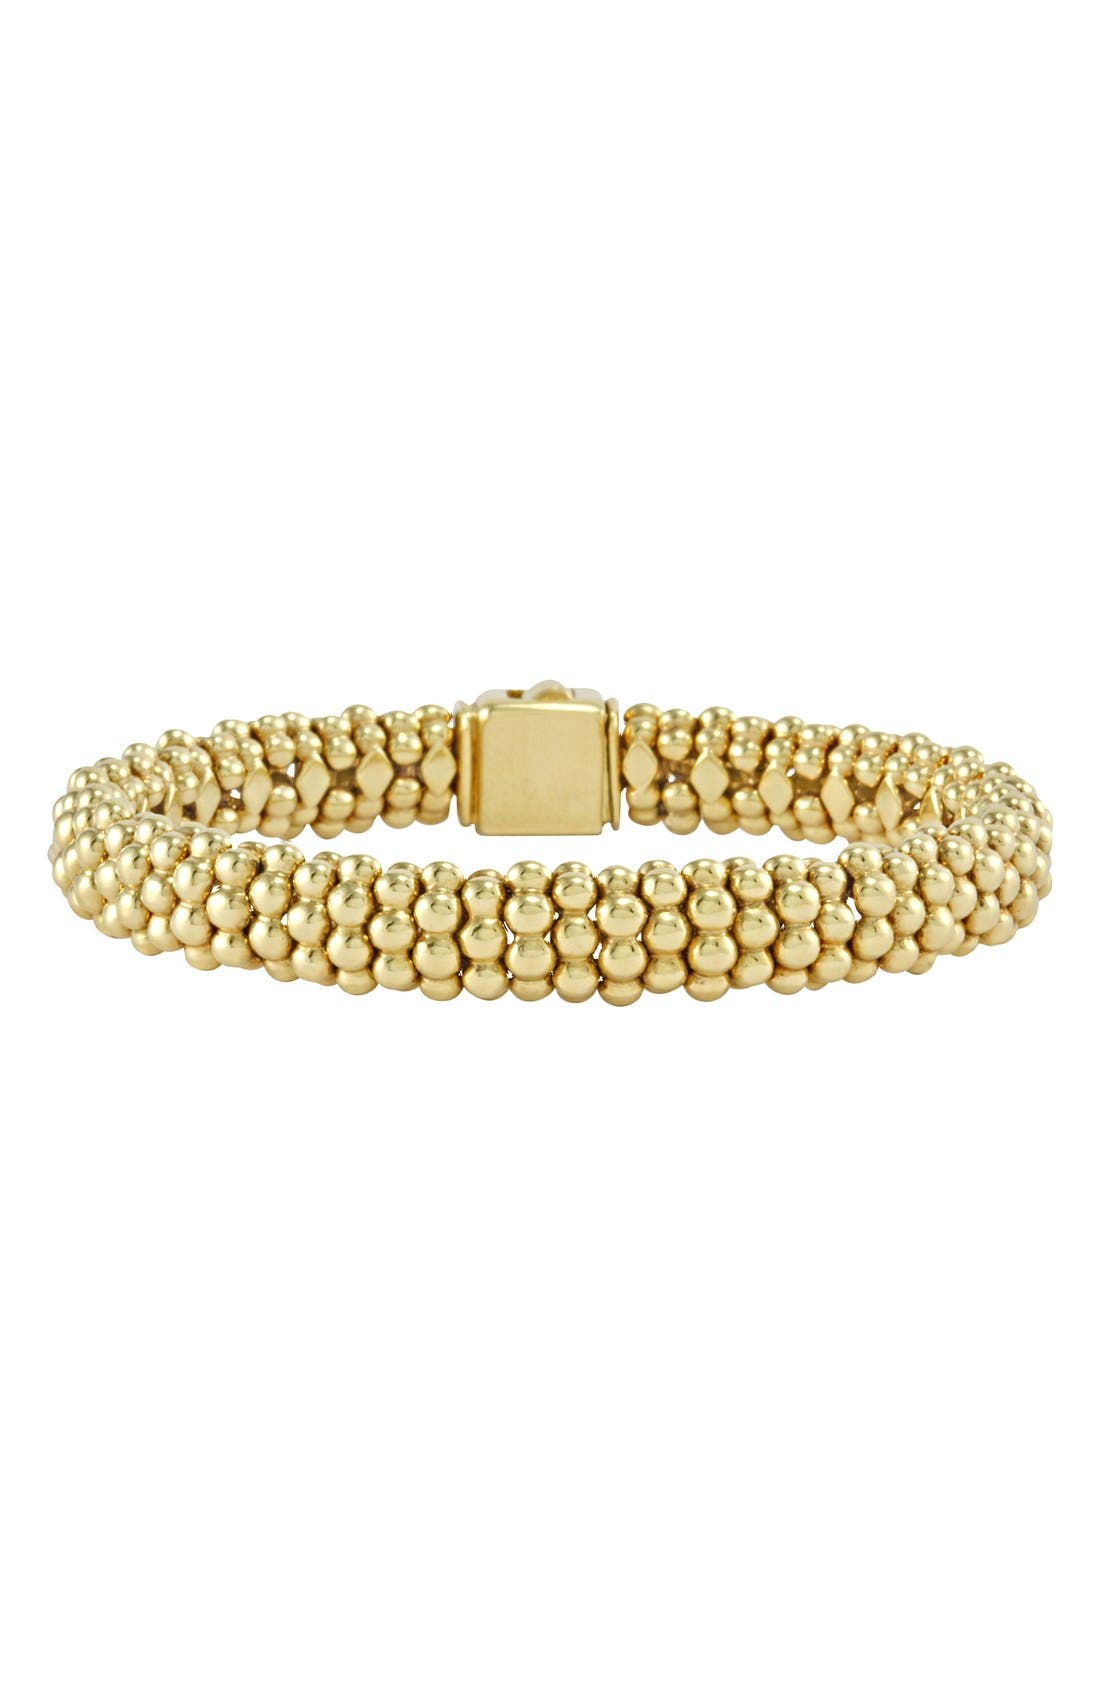 'Caviar Gold' Rope Bracelet,                         Main,                         color, Gold